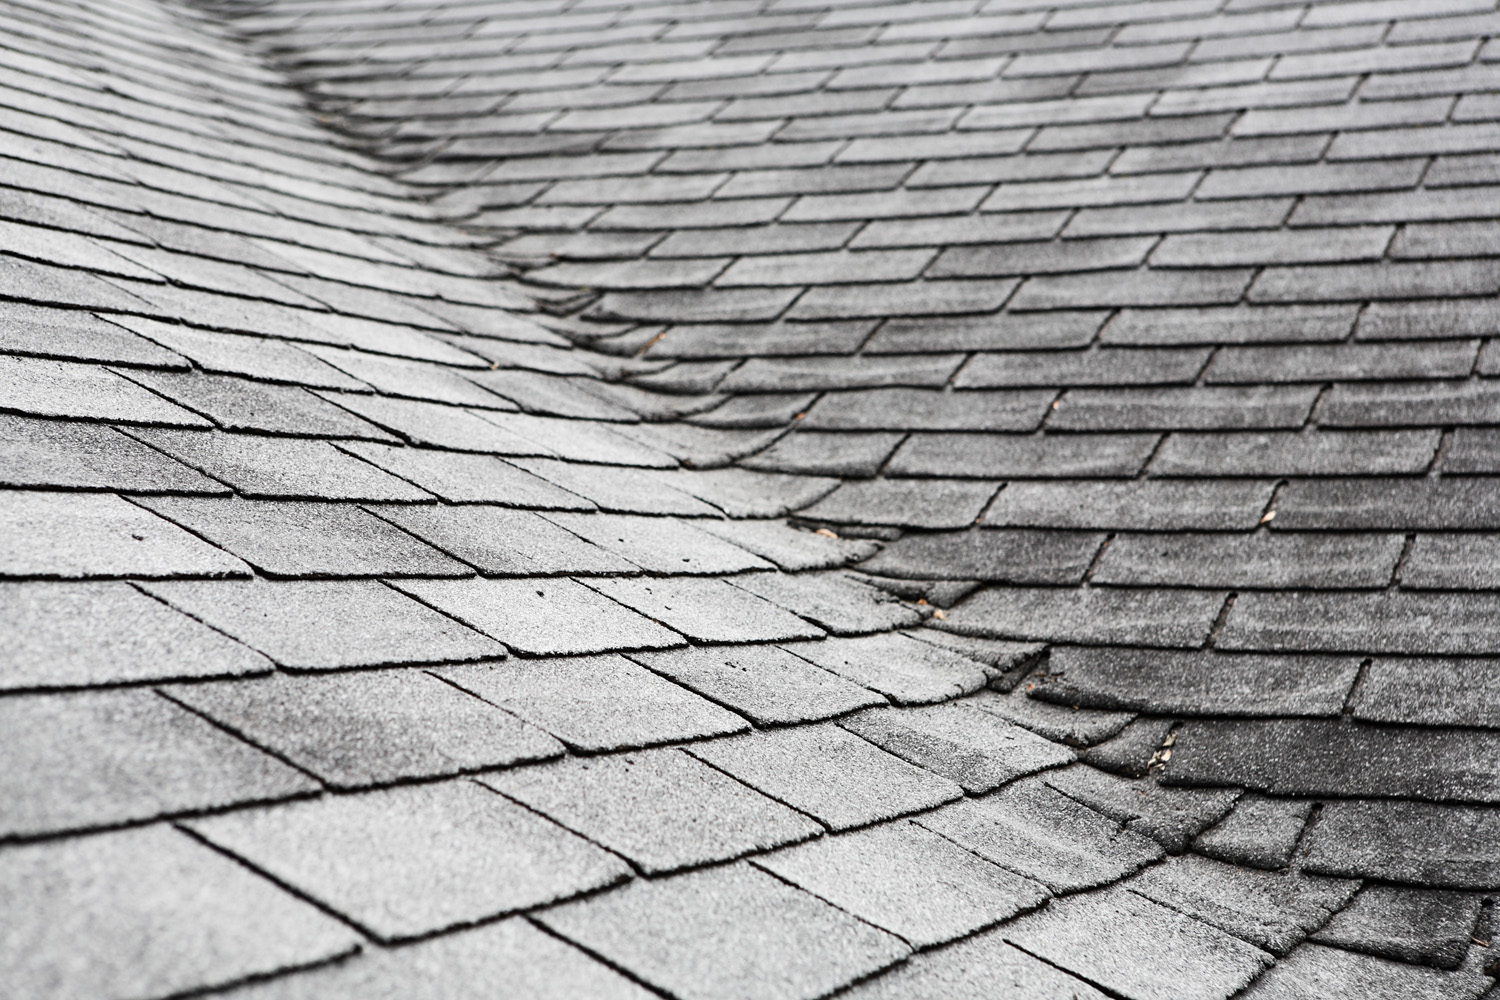 Keeping tabs on your roof doesn't have to be difficult